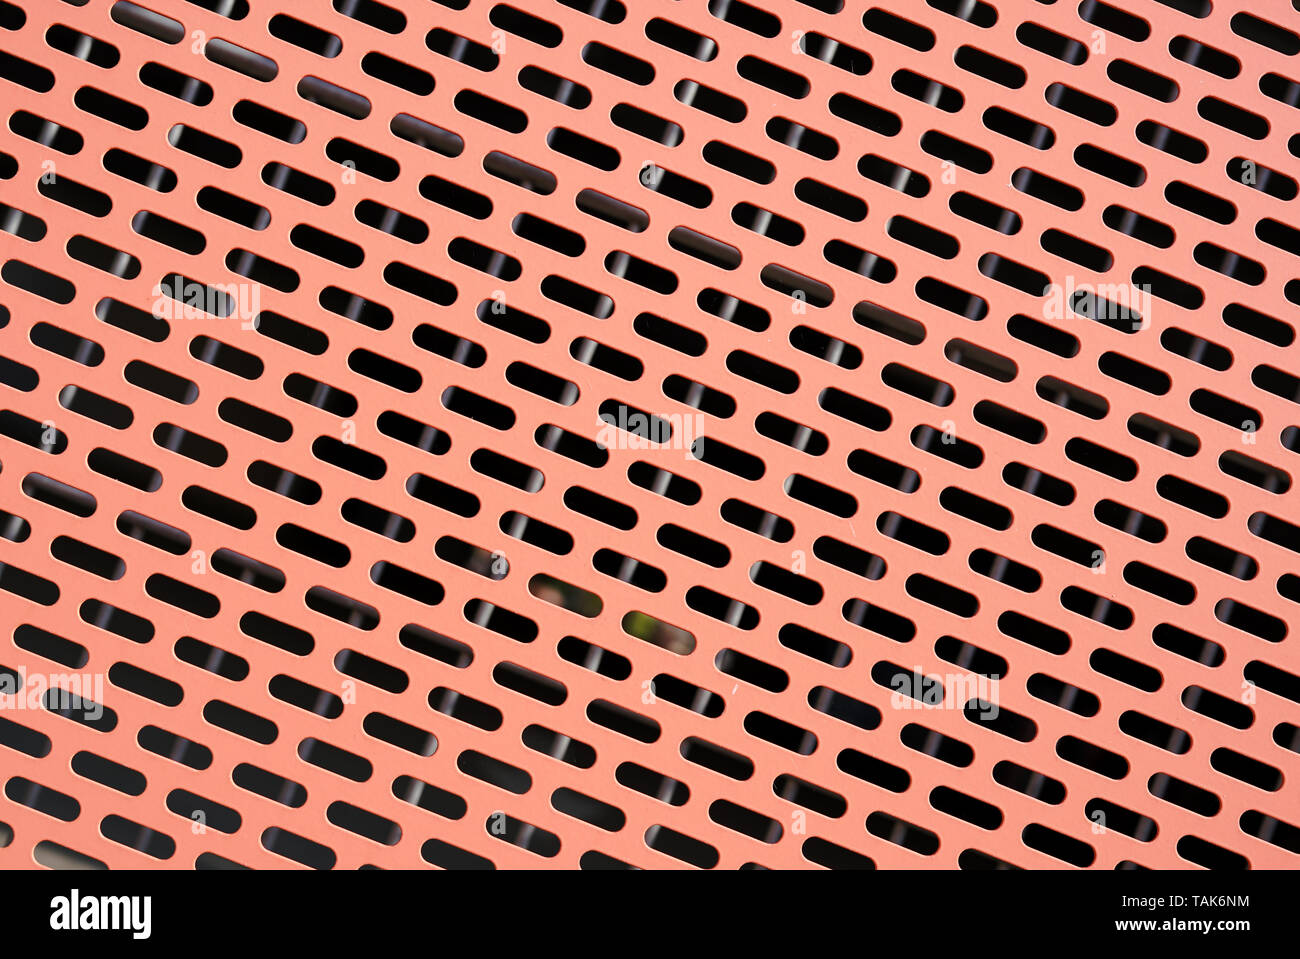 Perforated sheet as facade cladding - Stock Image